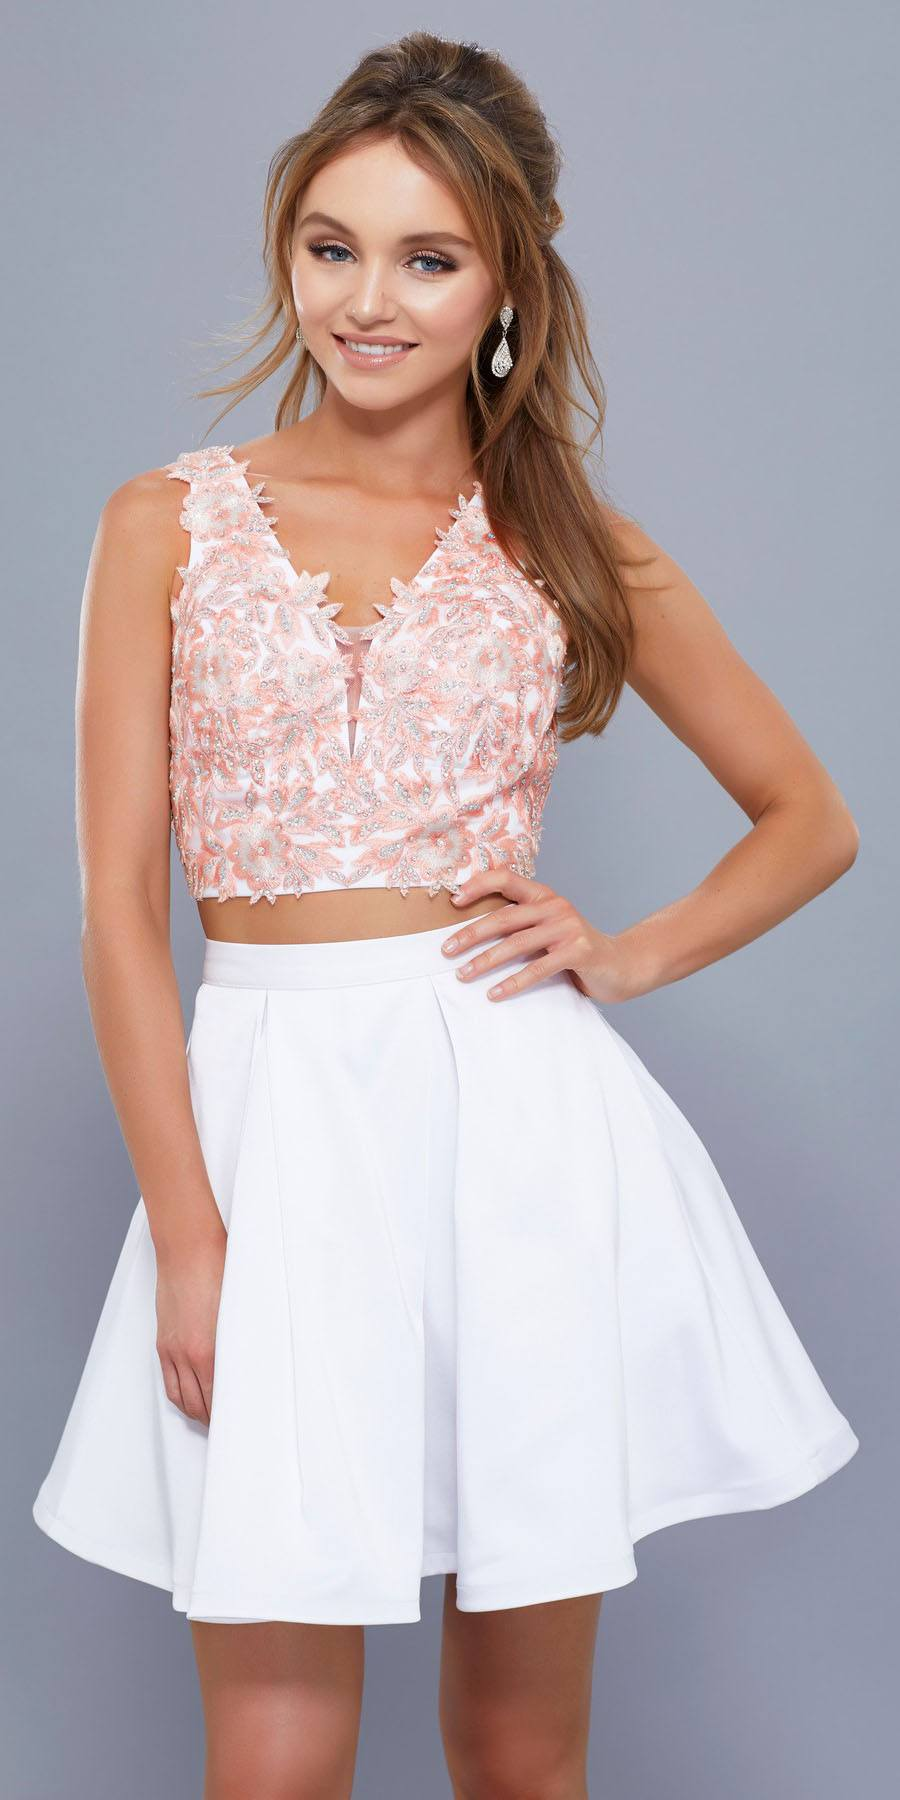 meet how to get enjoy discount price White-Peach V-Neck Two-Piece Homecoming Dress Appliqued Crop Top